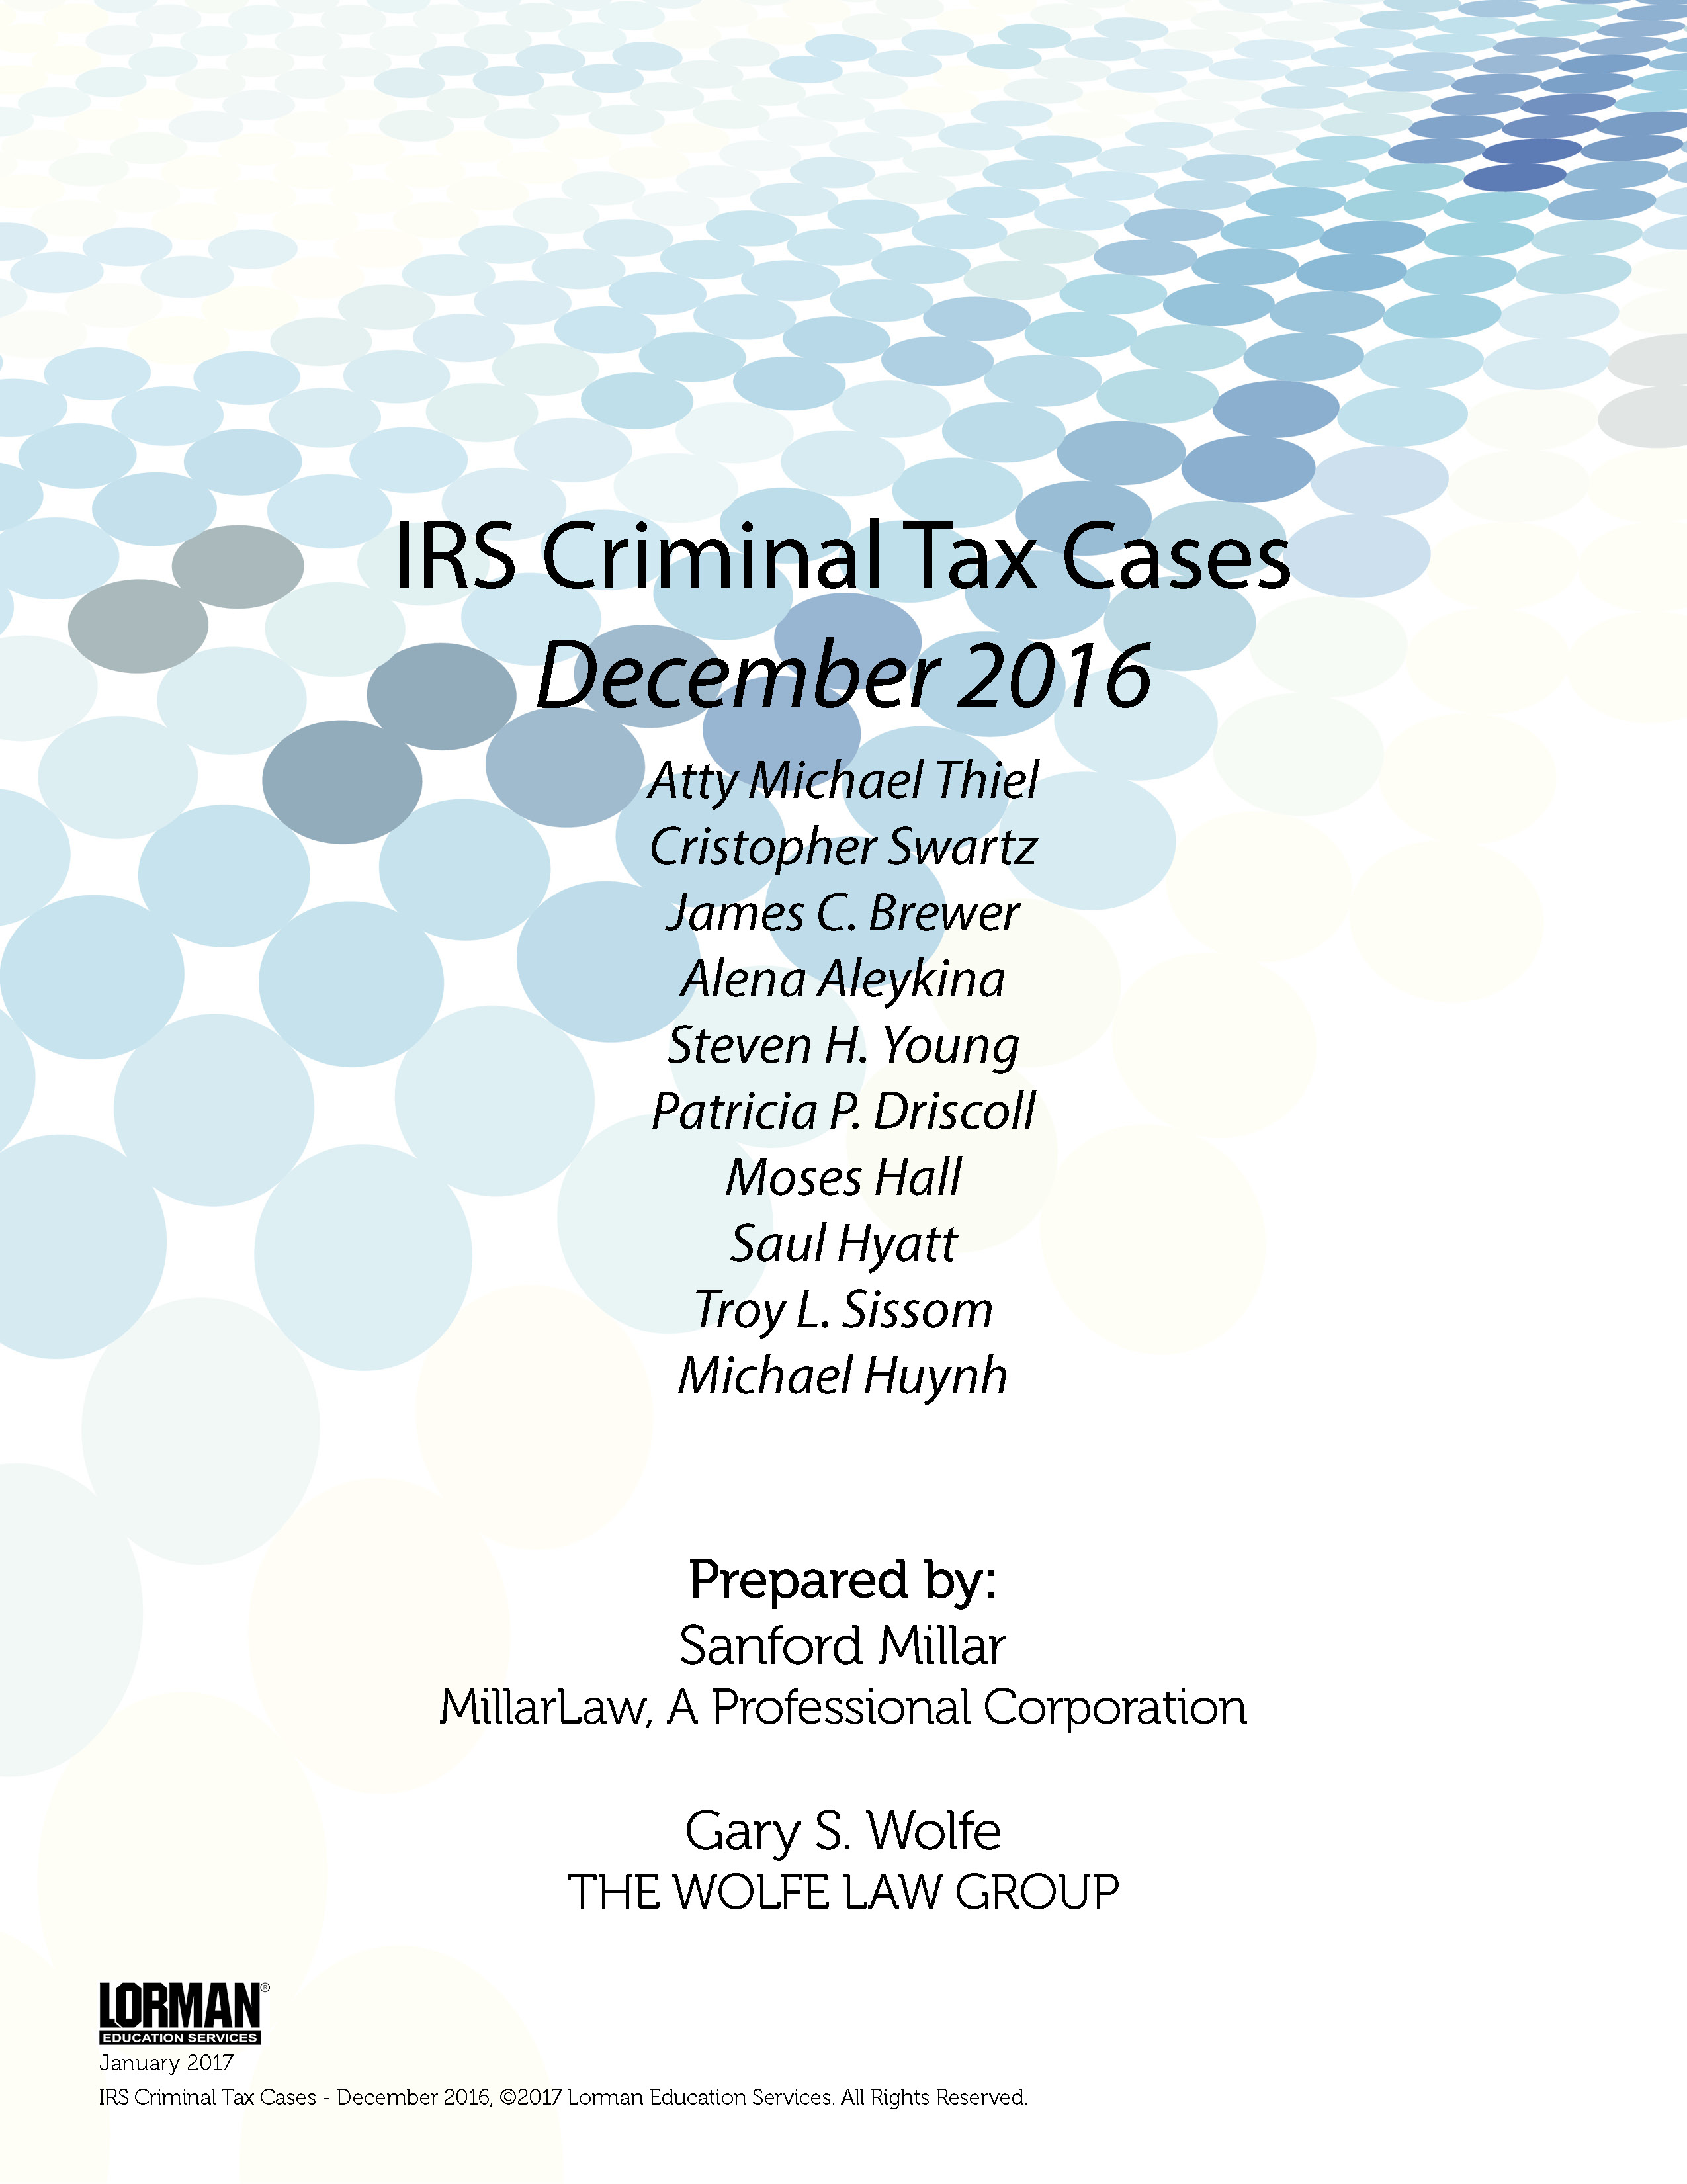 IRS Criminal Tax Cases - December 2016